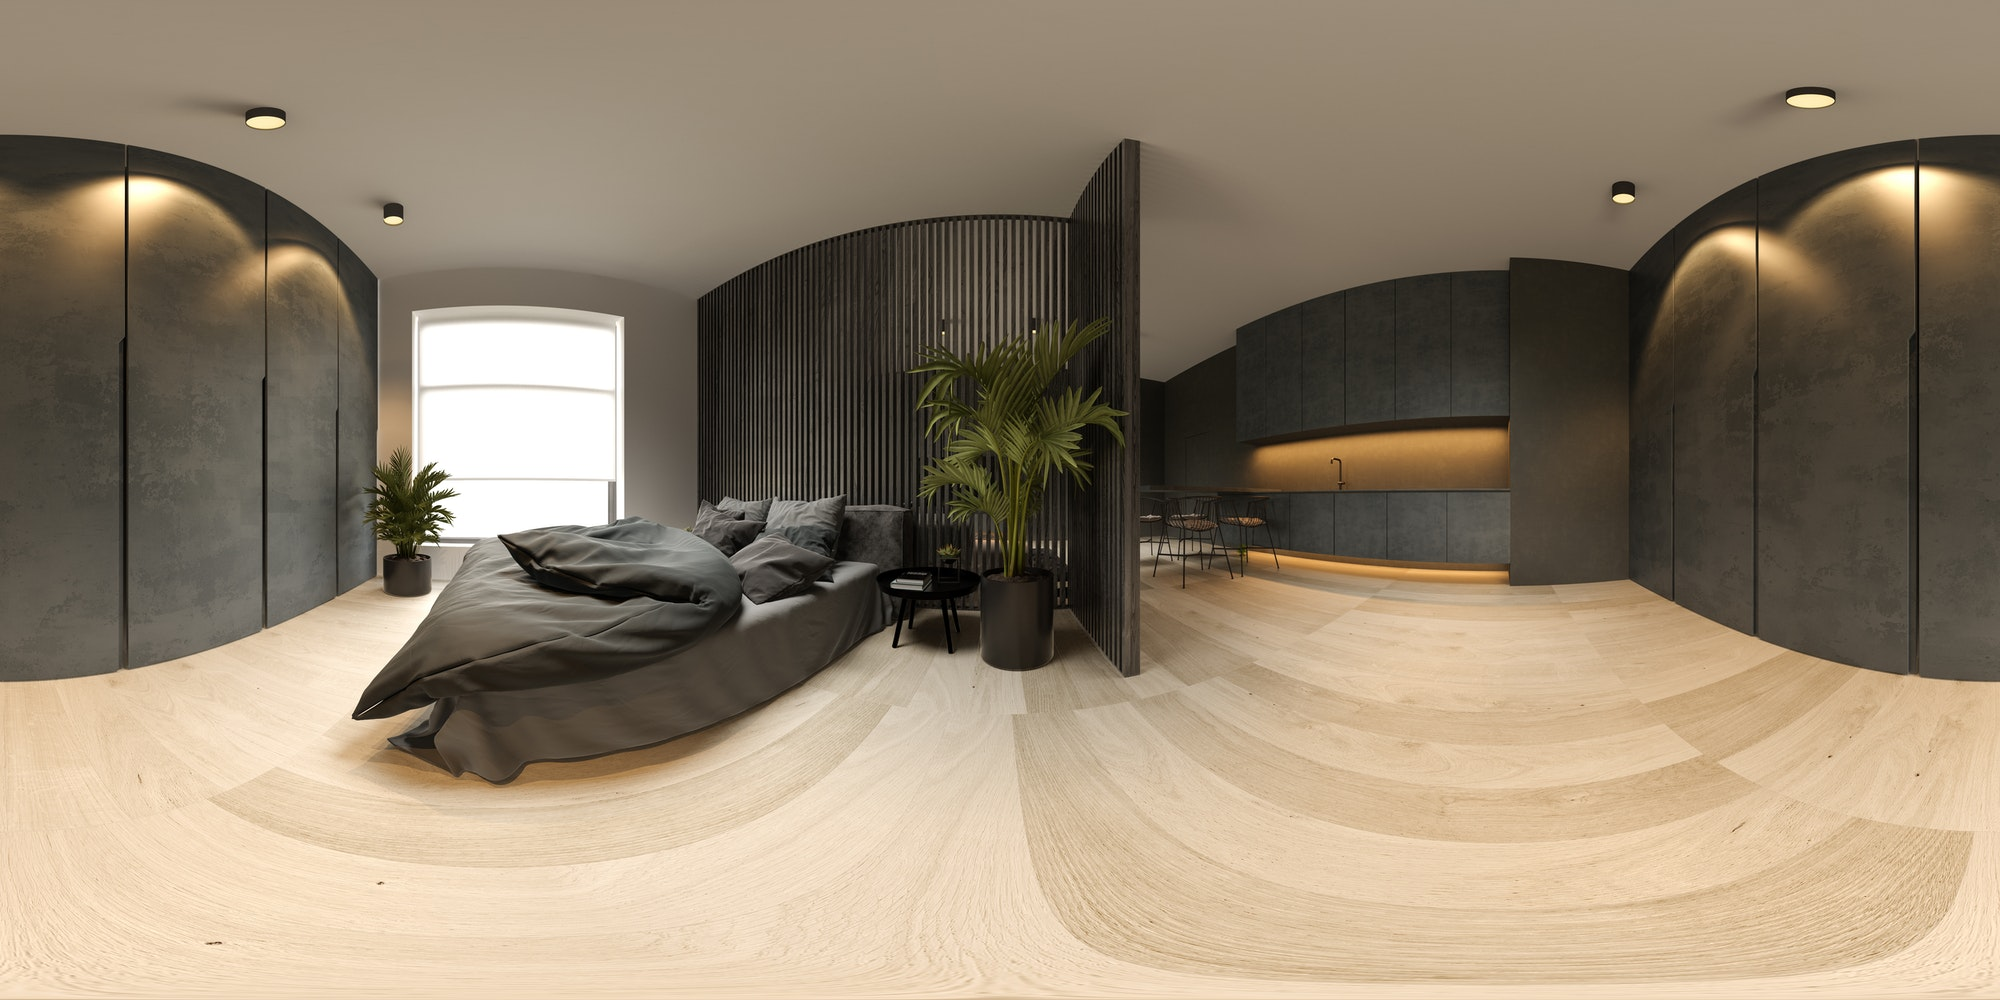 360 panorana black minimalist Interior of modern living room 3D rendering